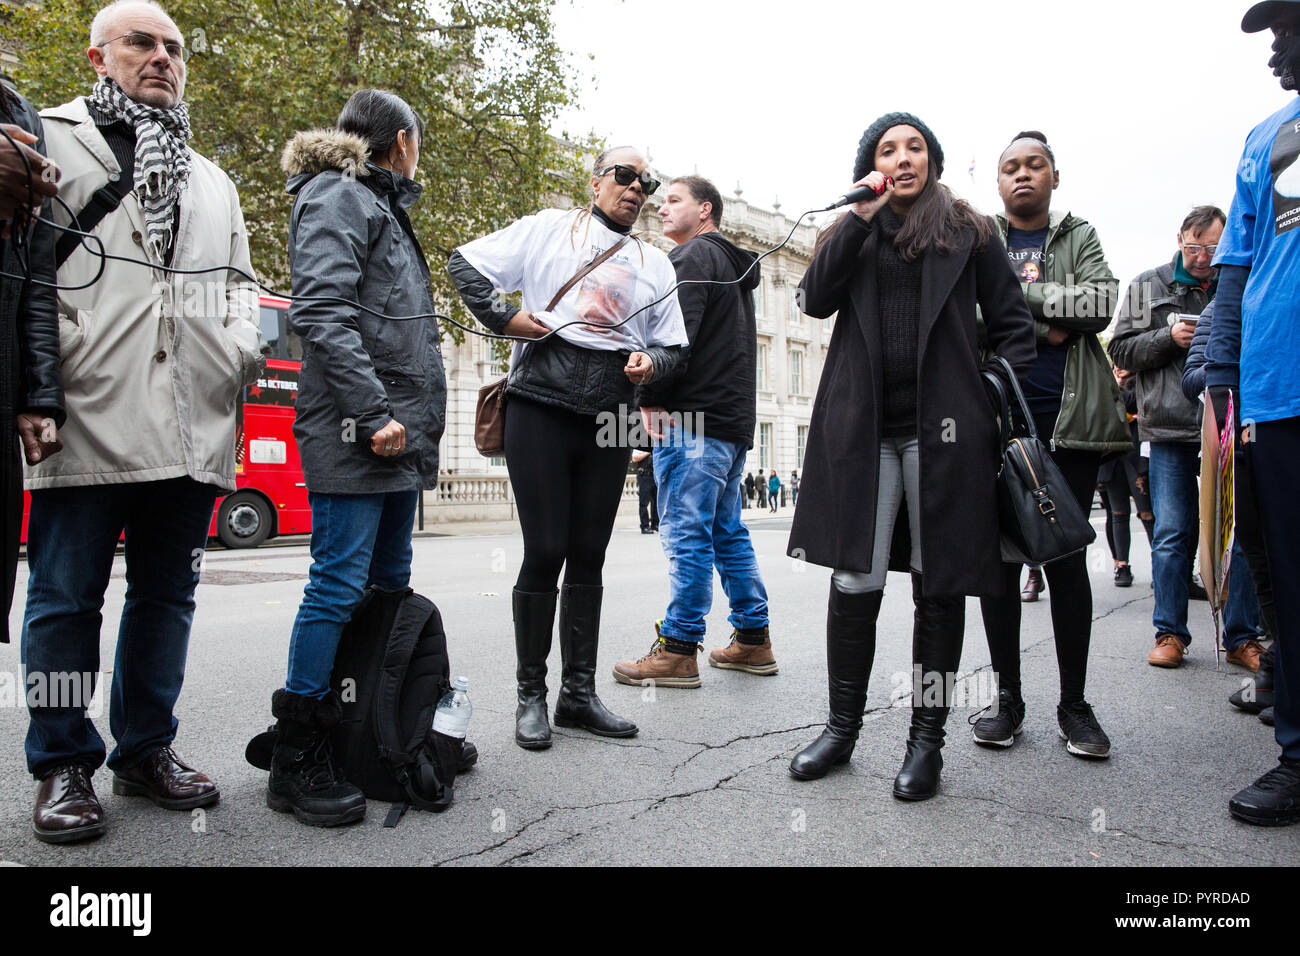 London, UK. 27th October, 2018. Lisa Cole, sister of Marc Cole, addresses campaigners from the United Families and Friends Campaign (UFFC). - Stock Image